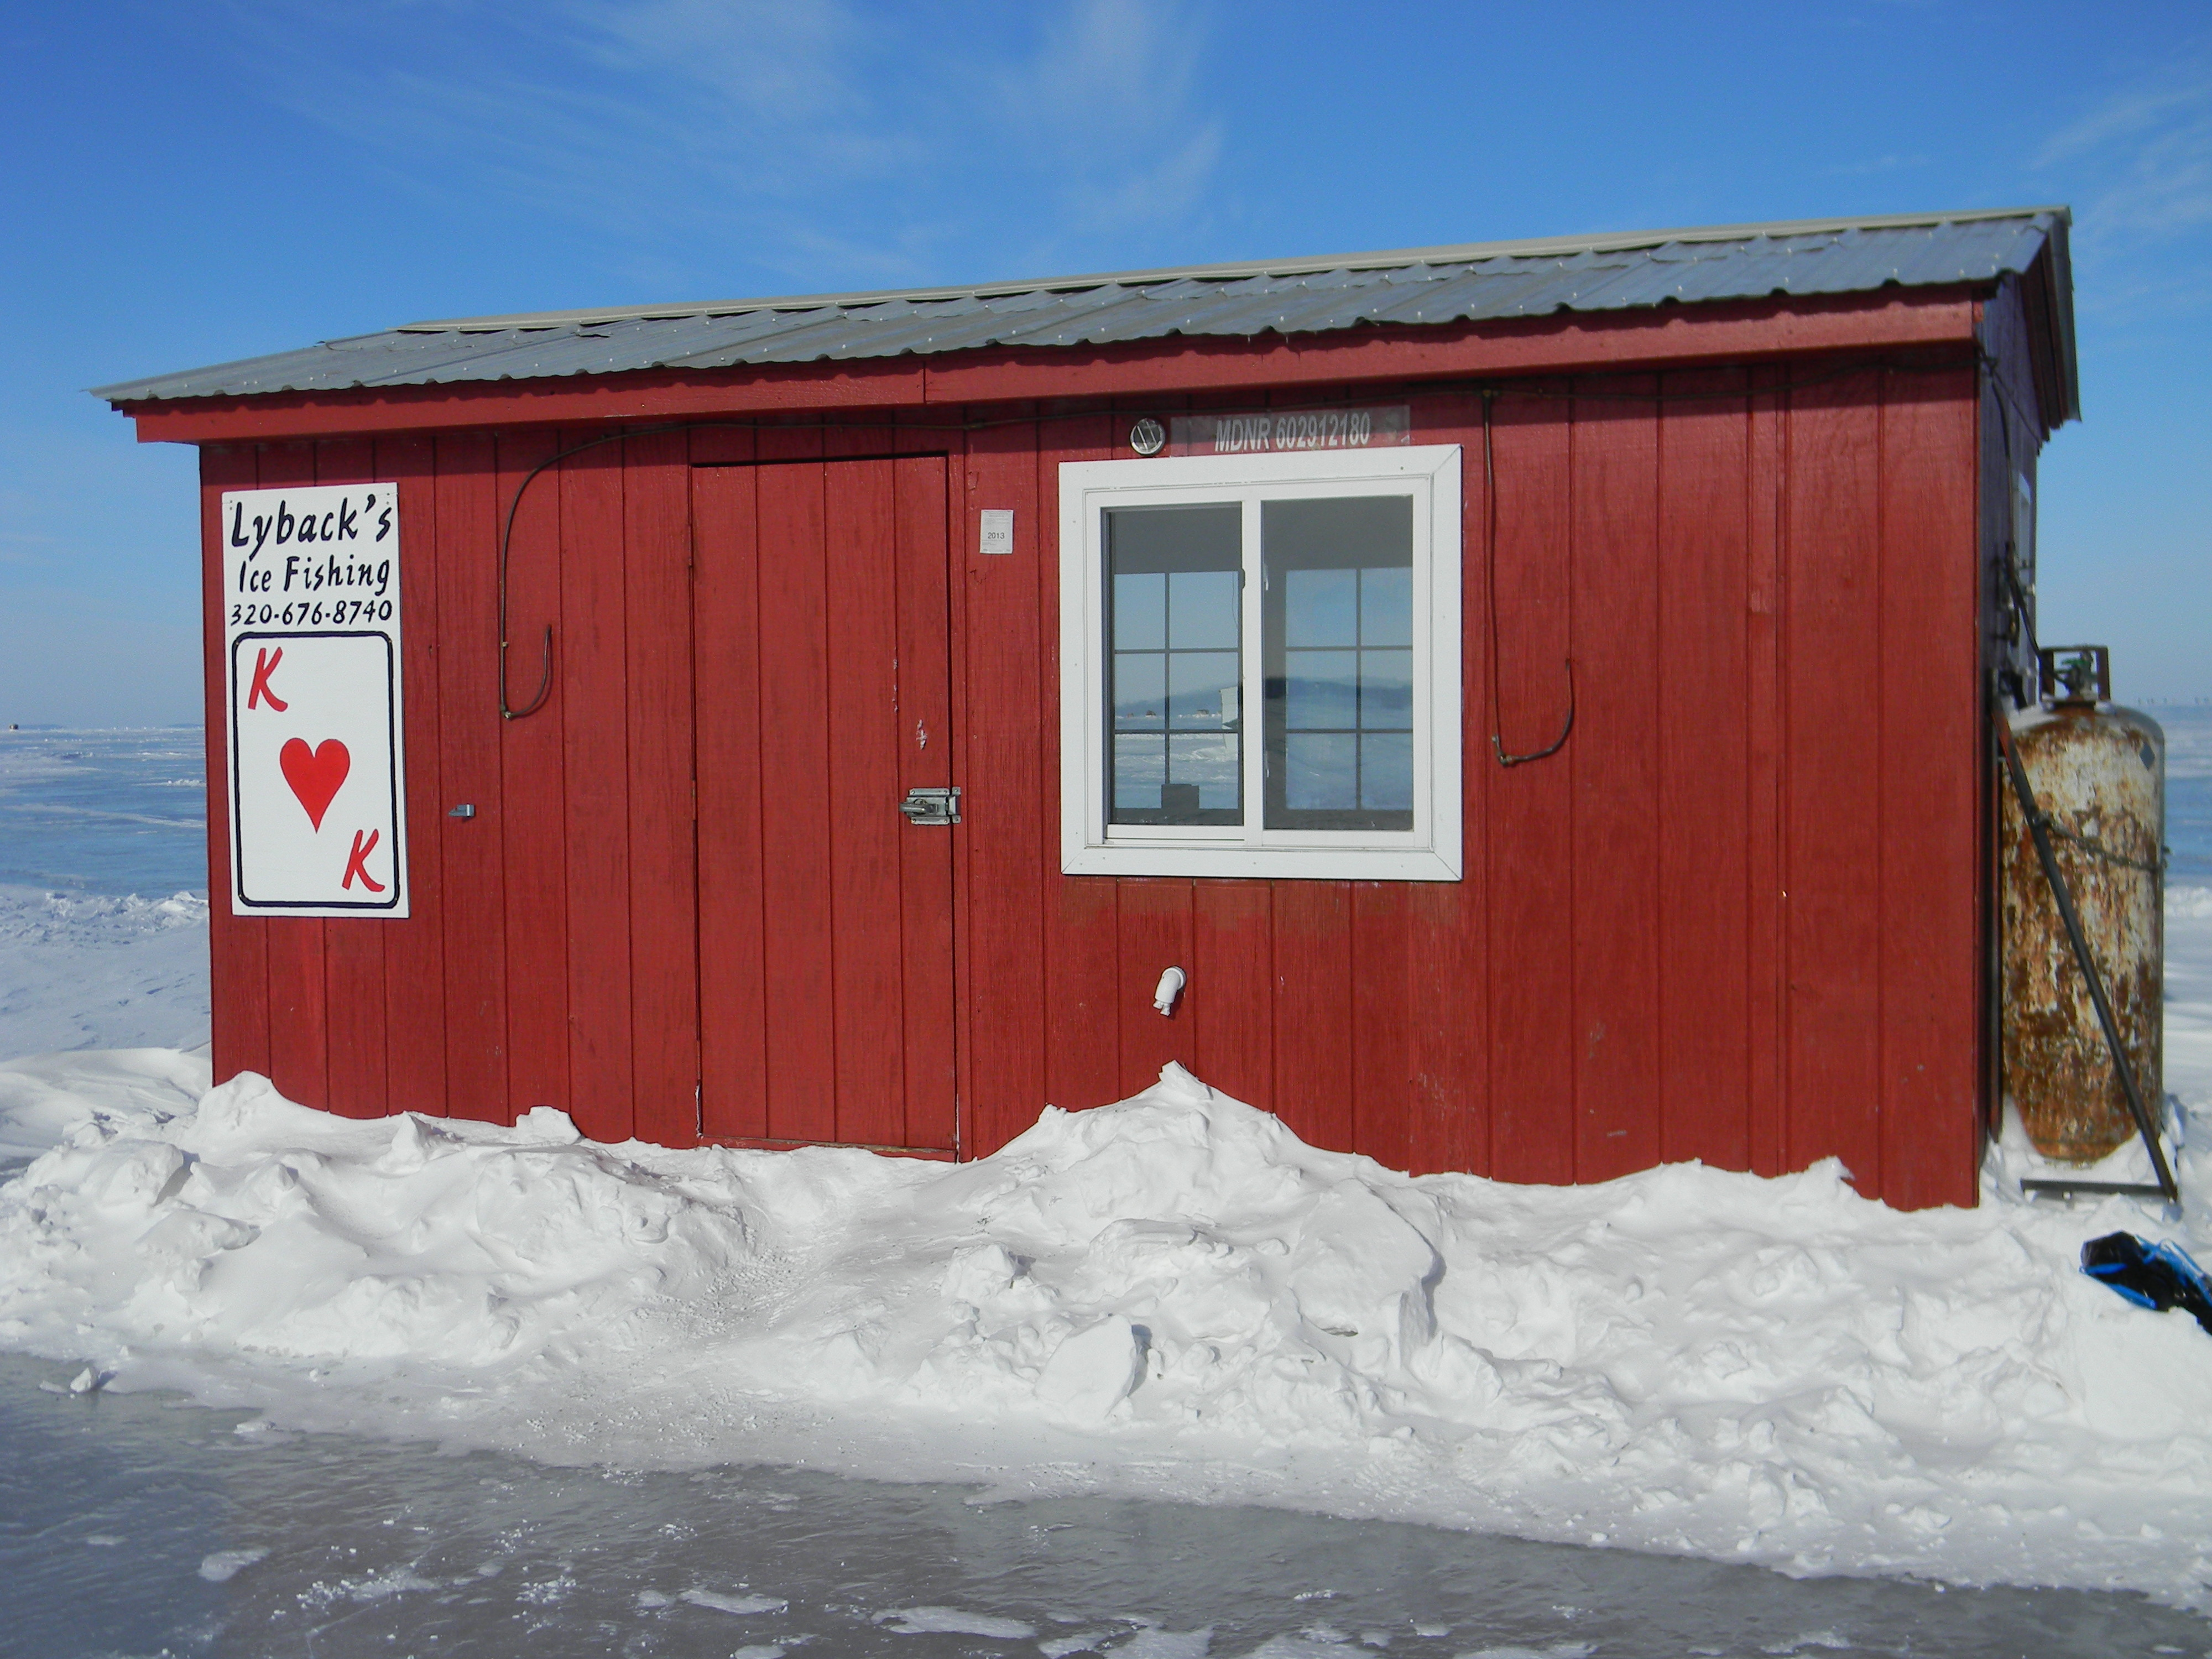 Best mille lacs houses ice fishing forum in depth outdoors for Mille lacs ice fishing rentals